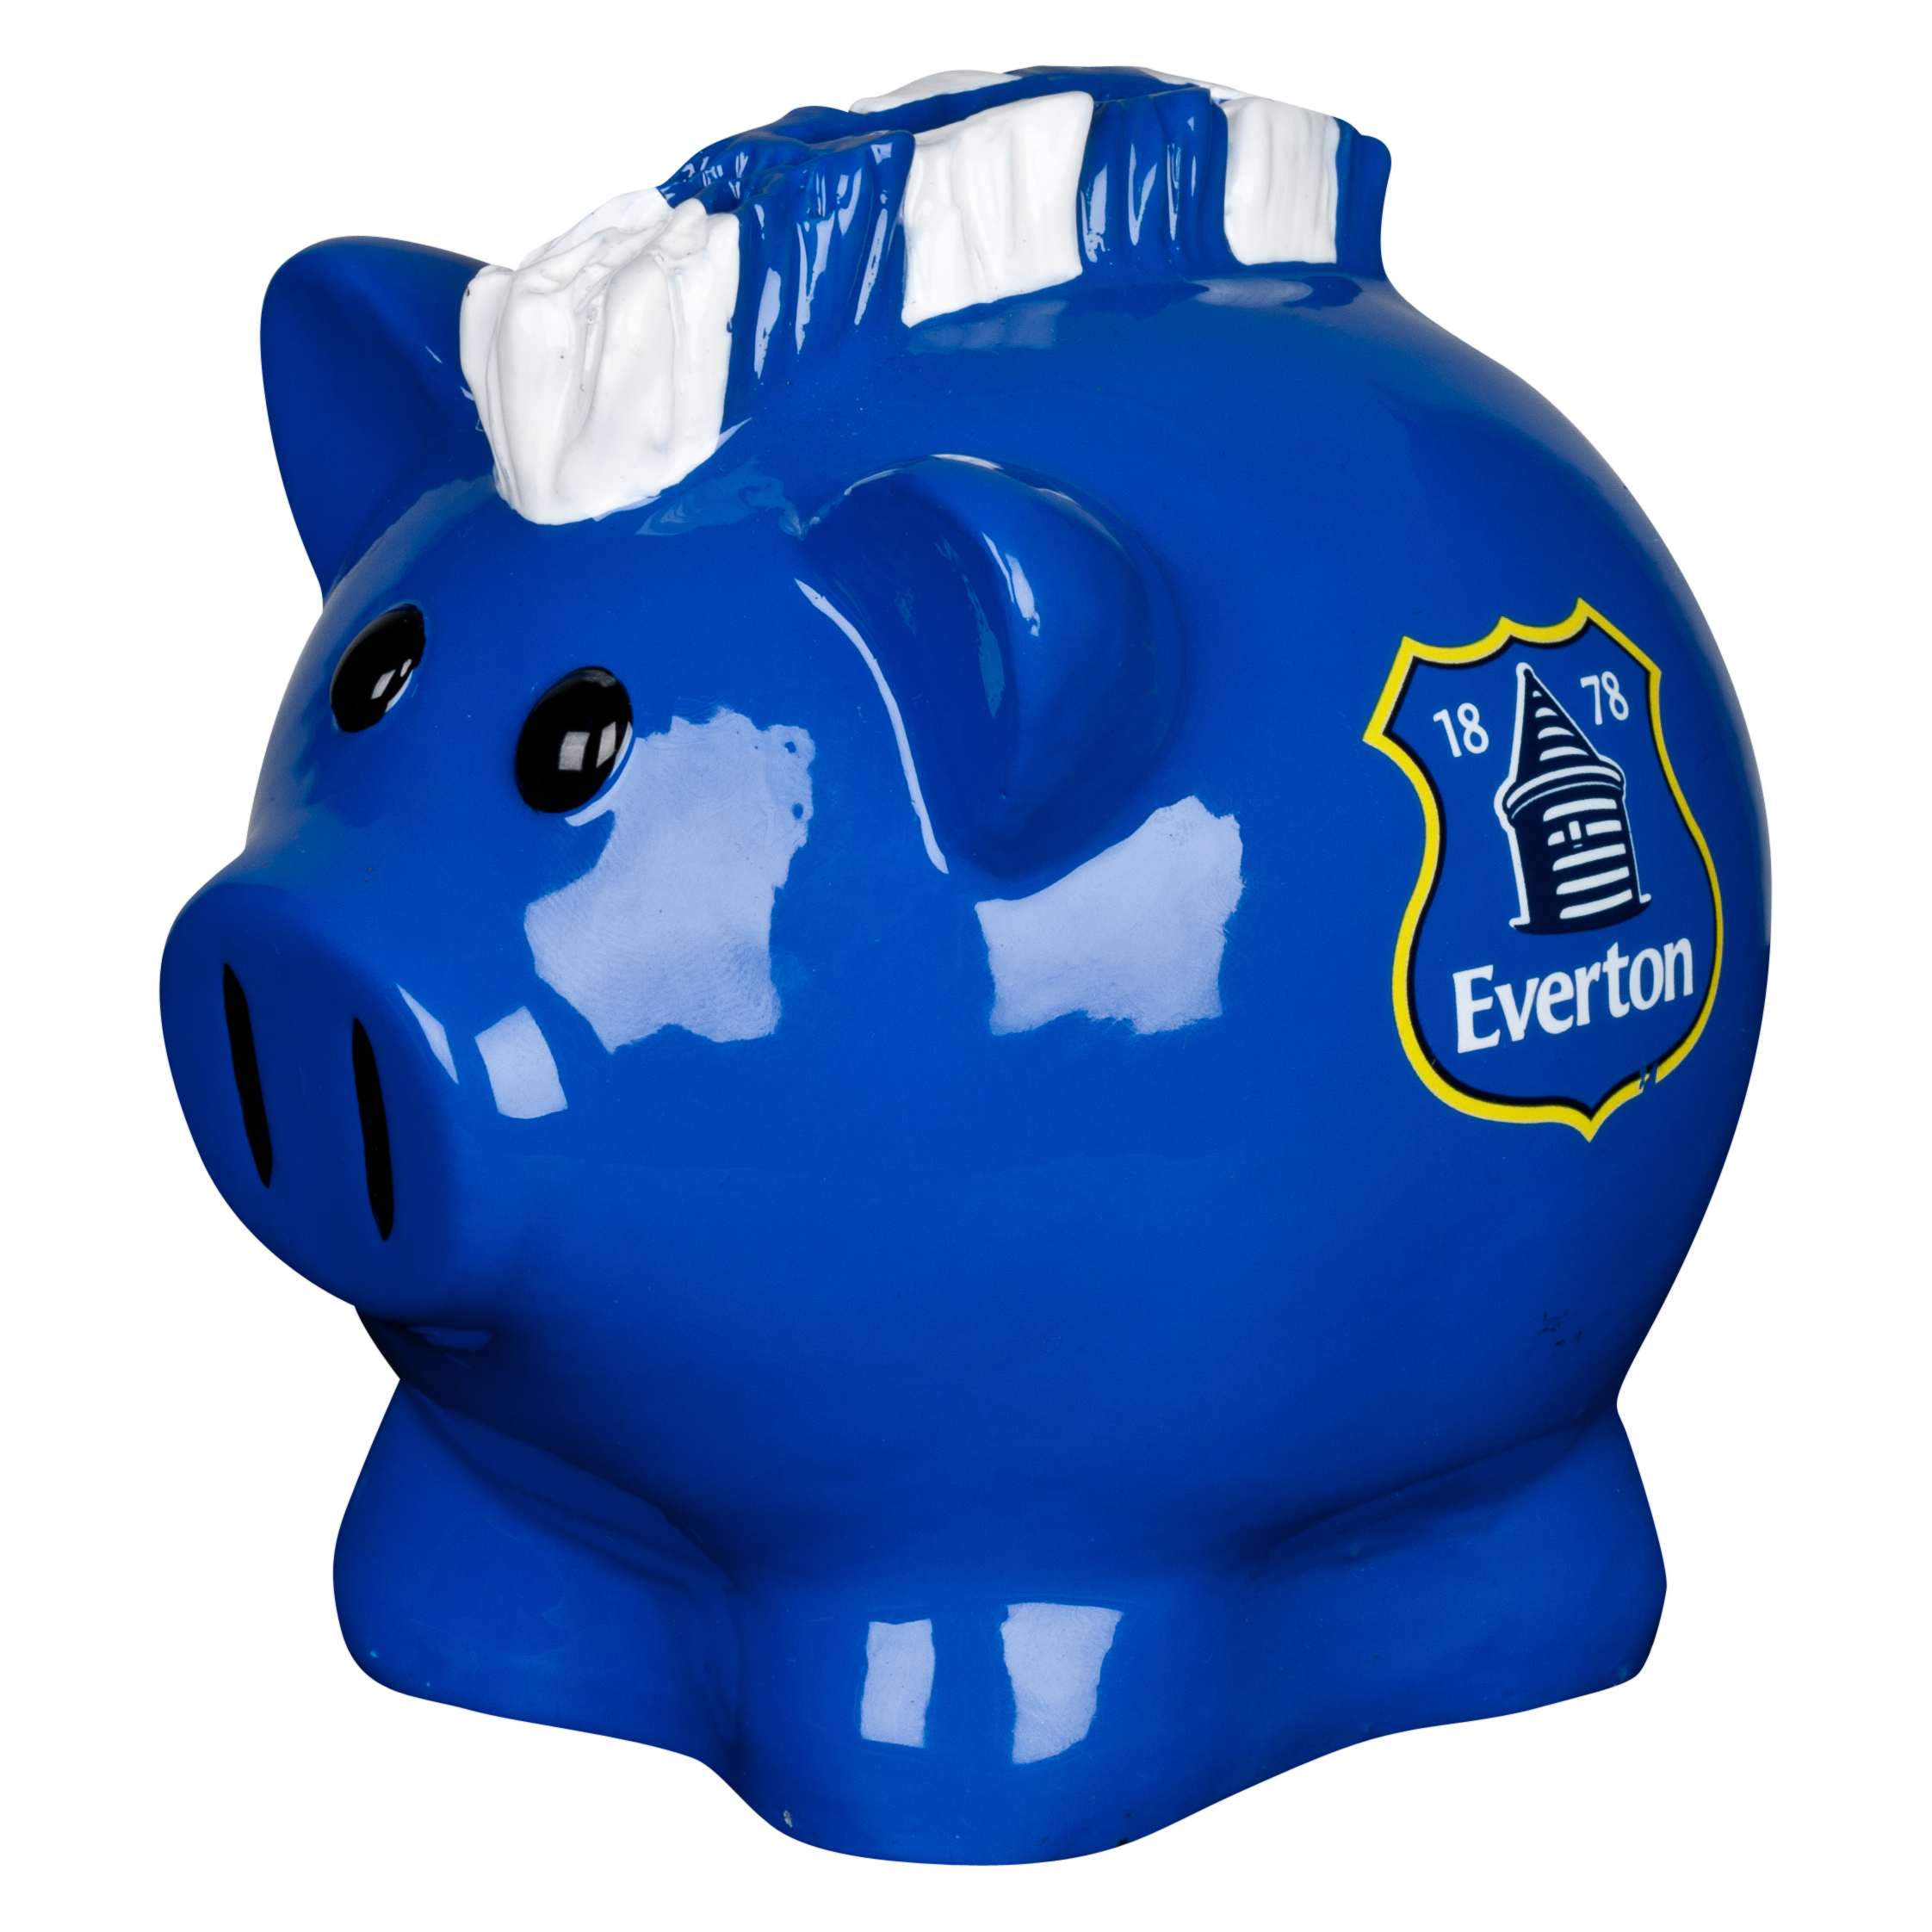 Everton Mohawk Small Piggy Bank - 4x4inch